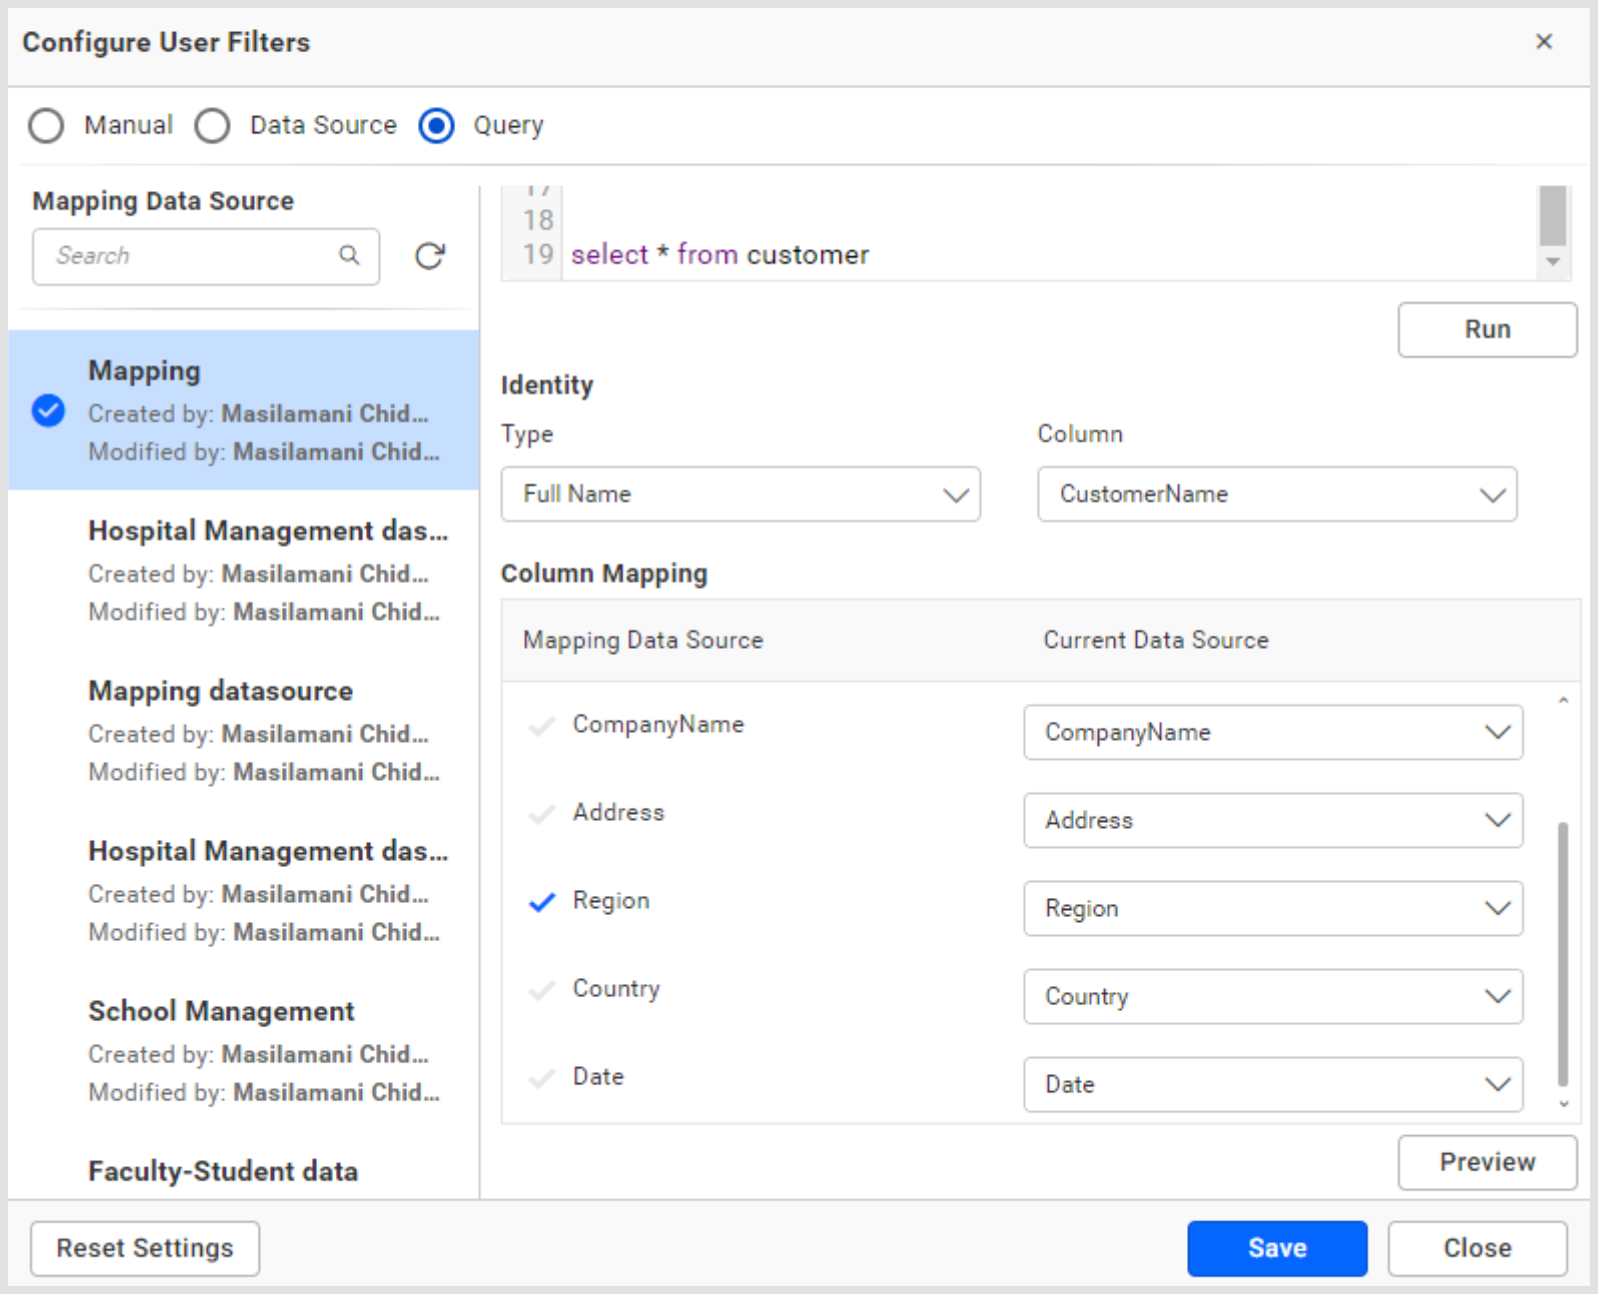 Configuring User Filter in Query Mode